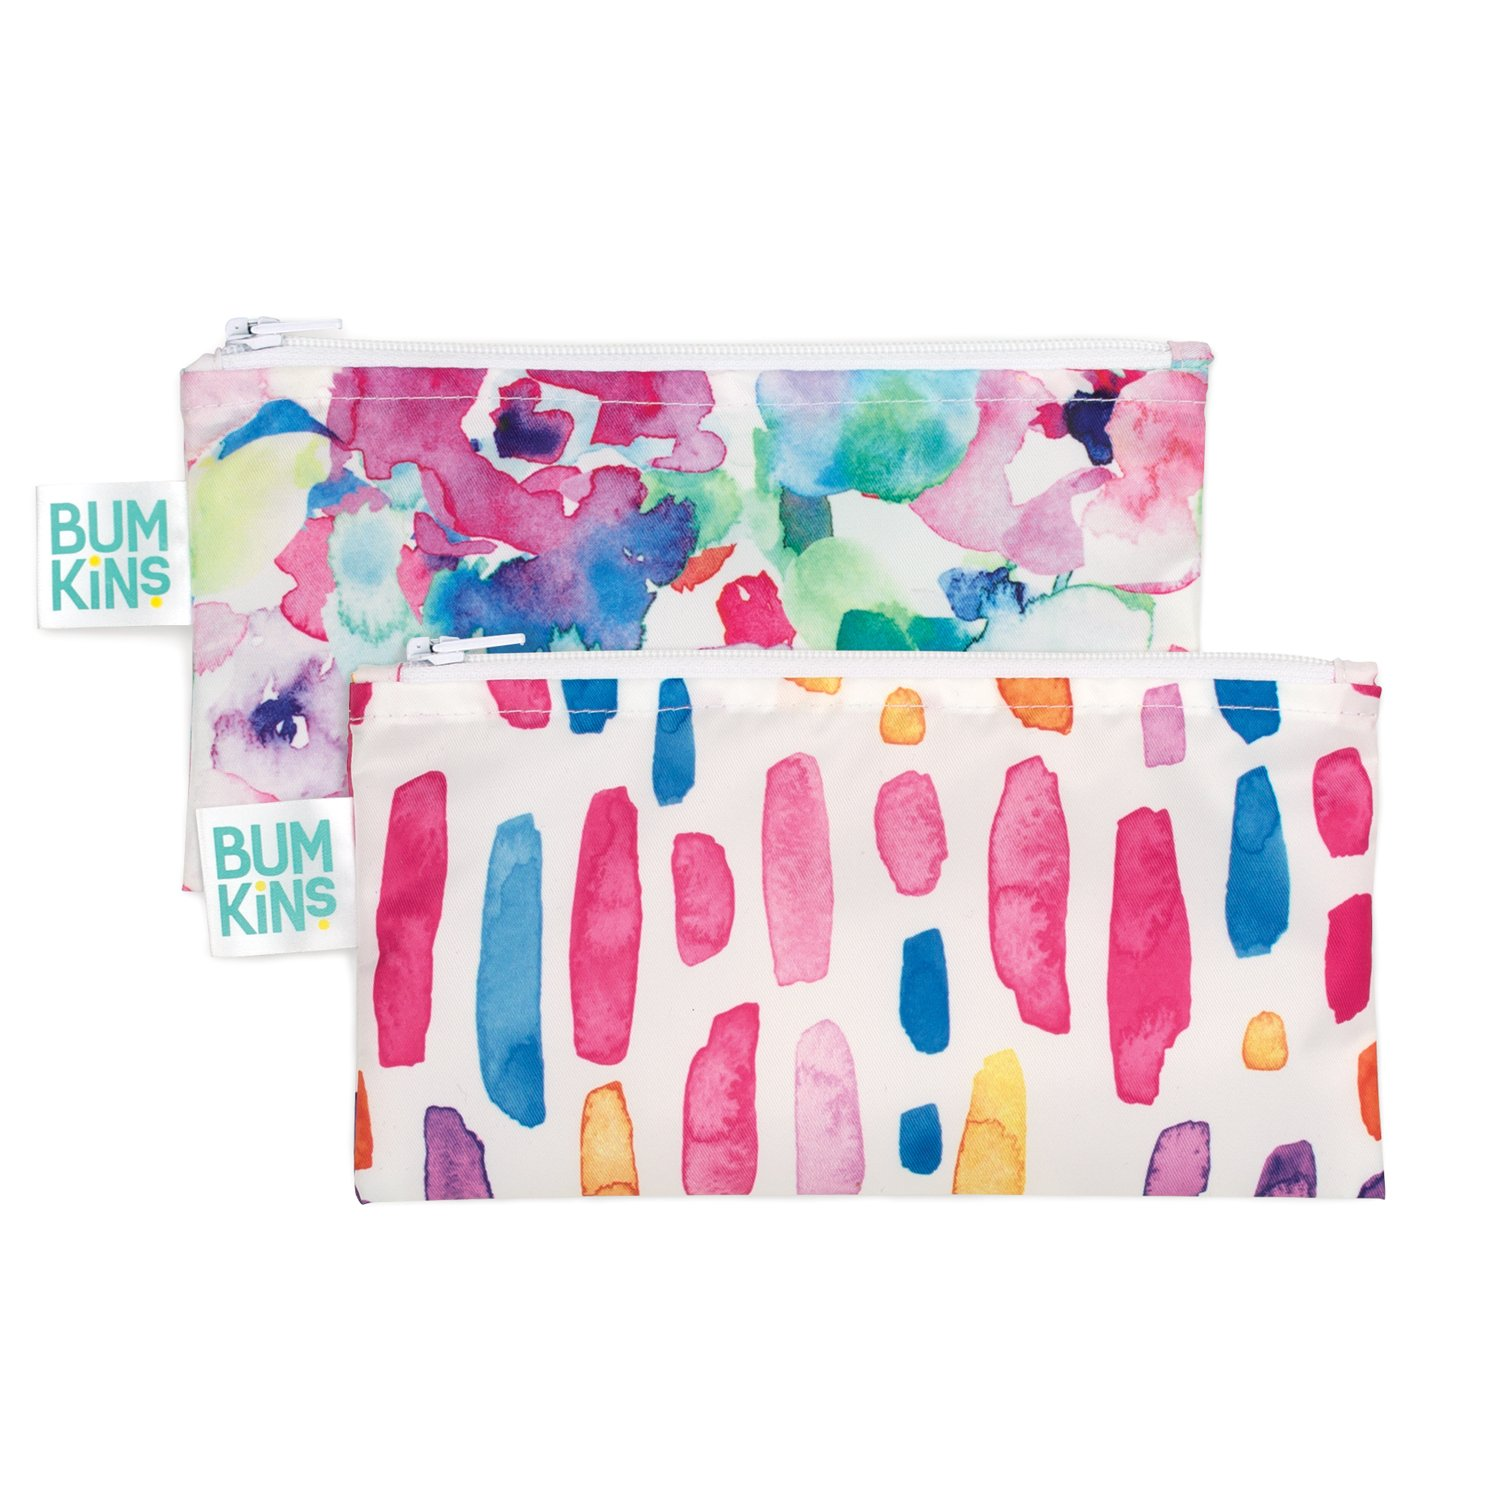 Bumkins Snack Bags, Reusable, Washable, Food Safe, BPA Free, 2-Pack – Watercolor & Brushstrokes